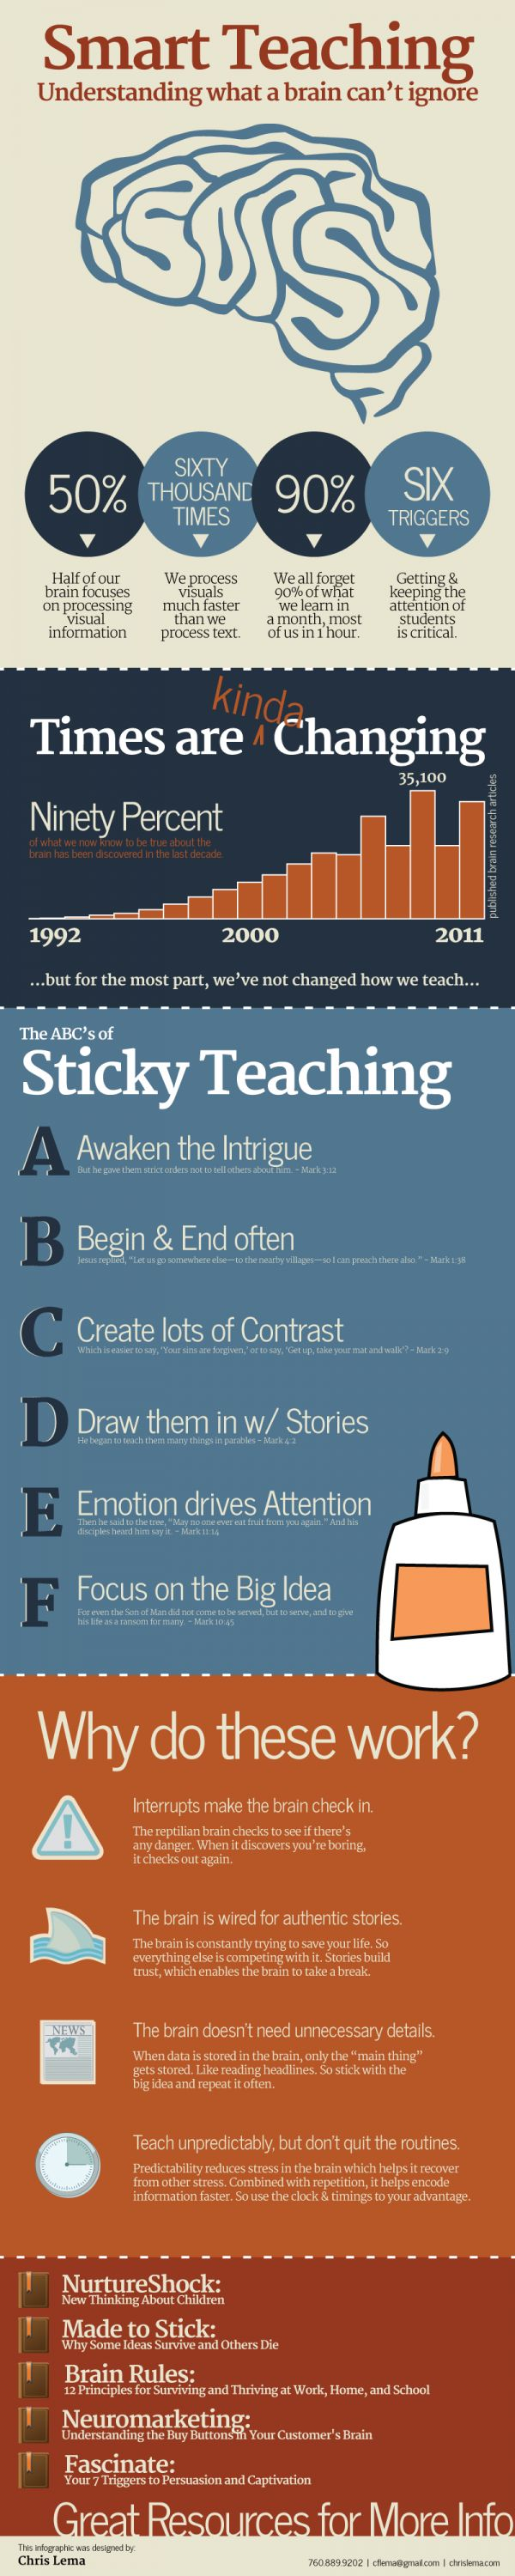 """Sticky Teaching"" - Smart Teaching, understanding what a brain can't ignore (infographic, from Chris Lema)"